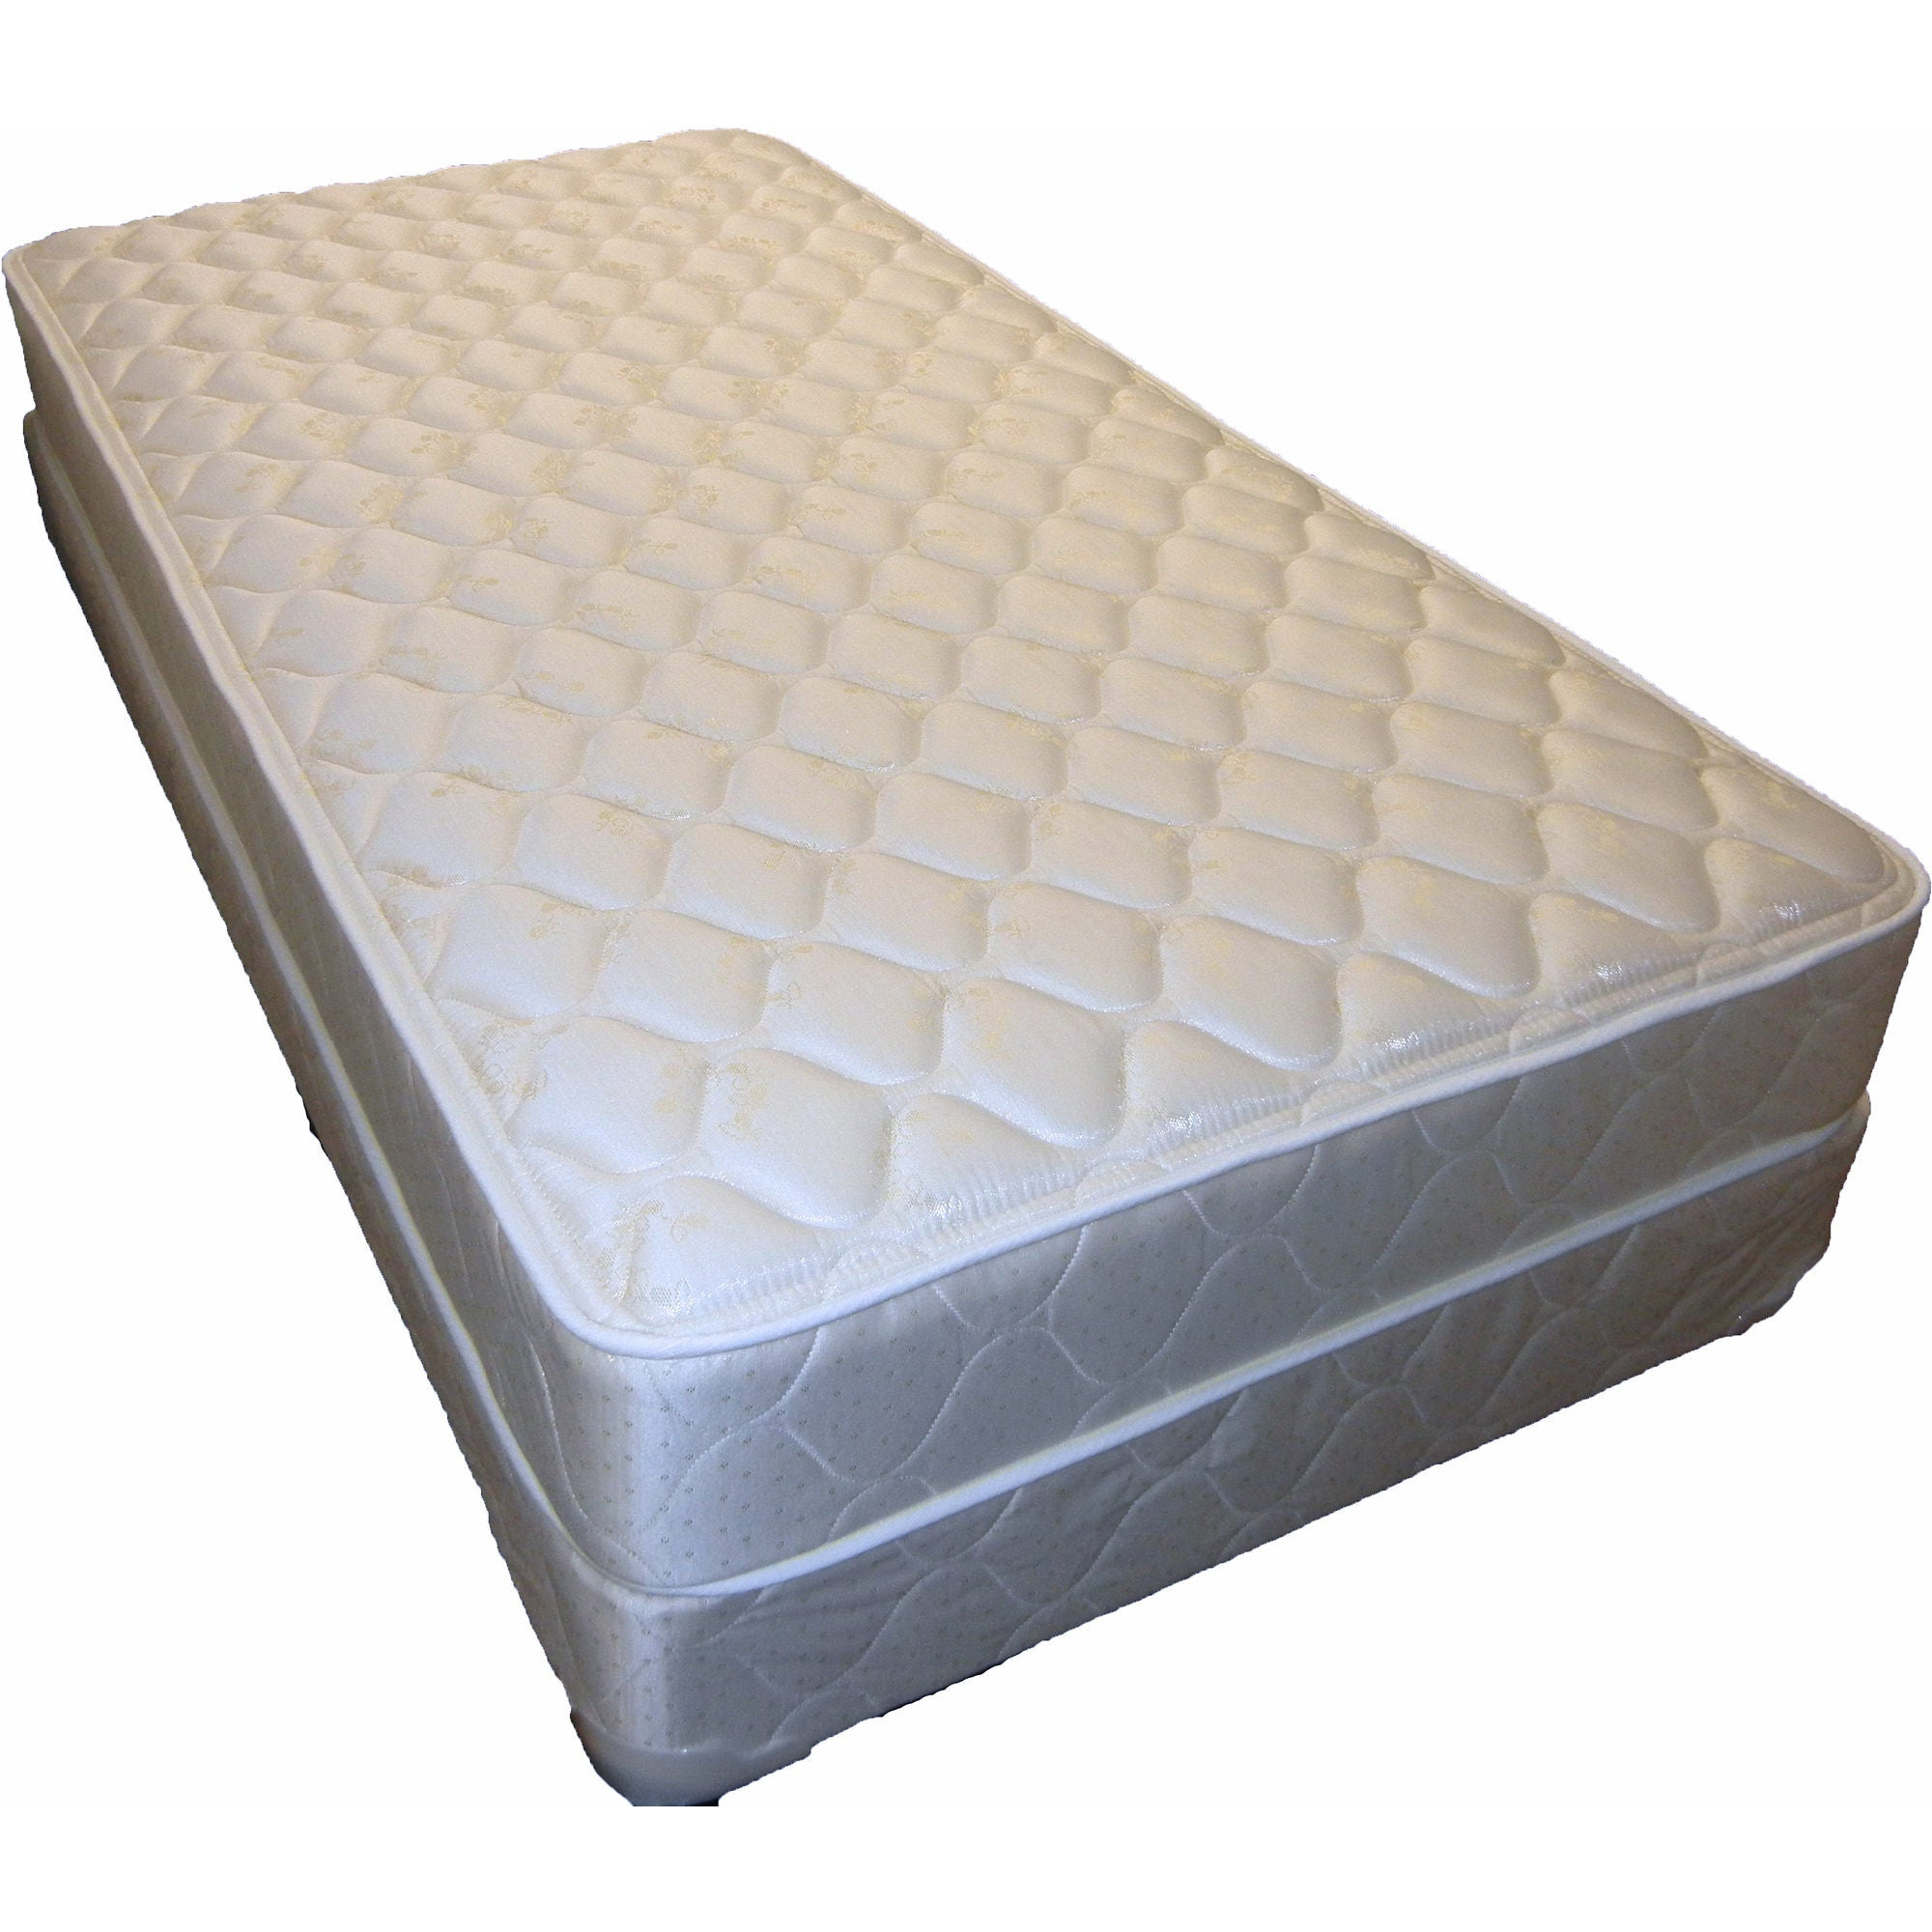 twin size mattress. Reliable Economy Twin Mattress Set Size E